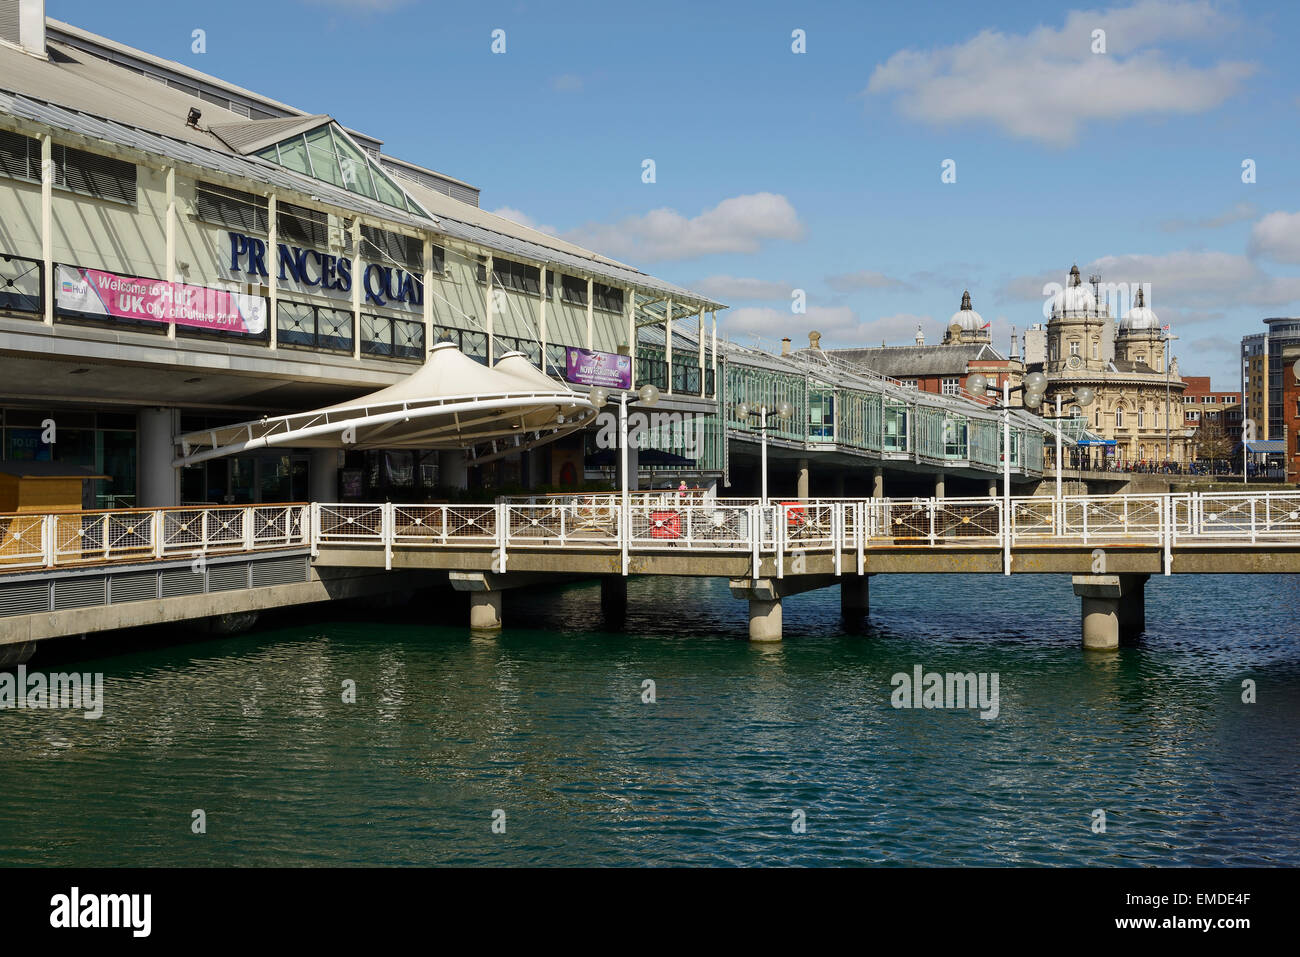 The Princes Quay Shopping Centre overlooking Princes dock in Hull city centre UK - Stock Image